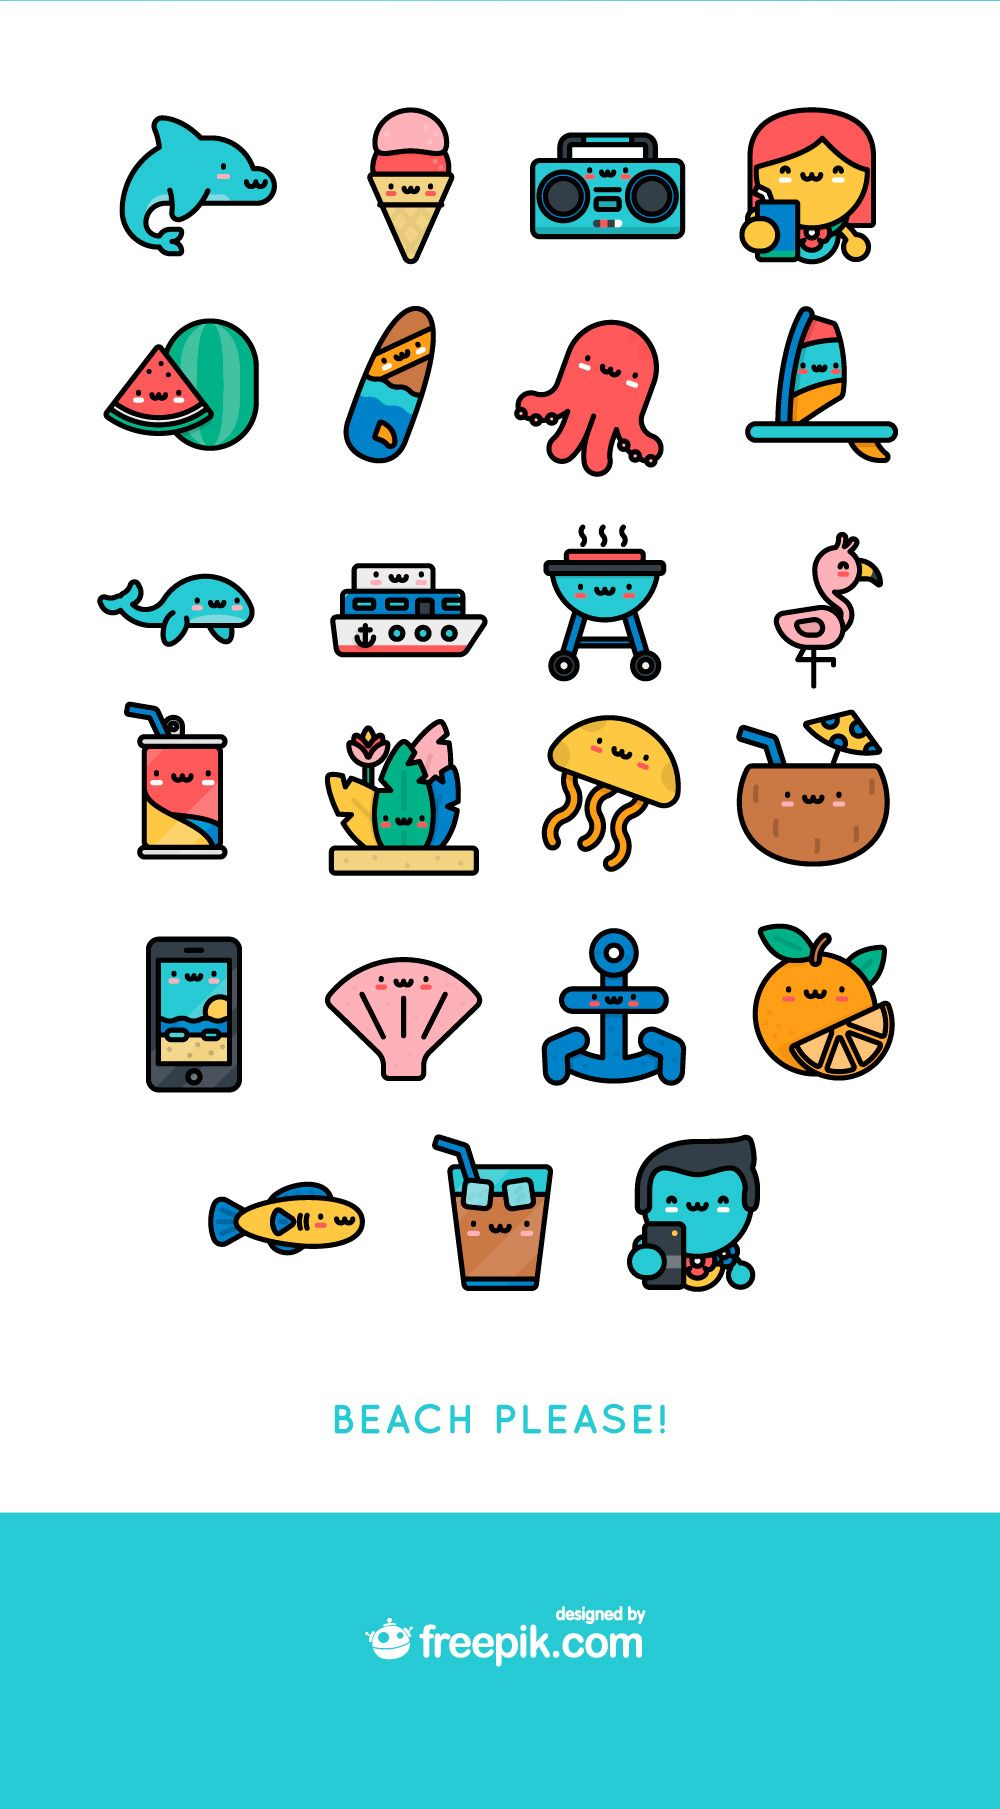 Kawaii summer icon illustrations. Free icons clipart download pack